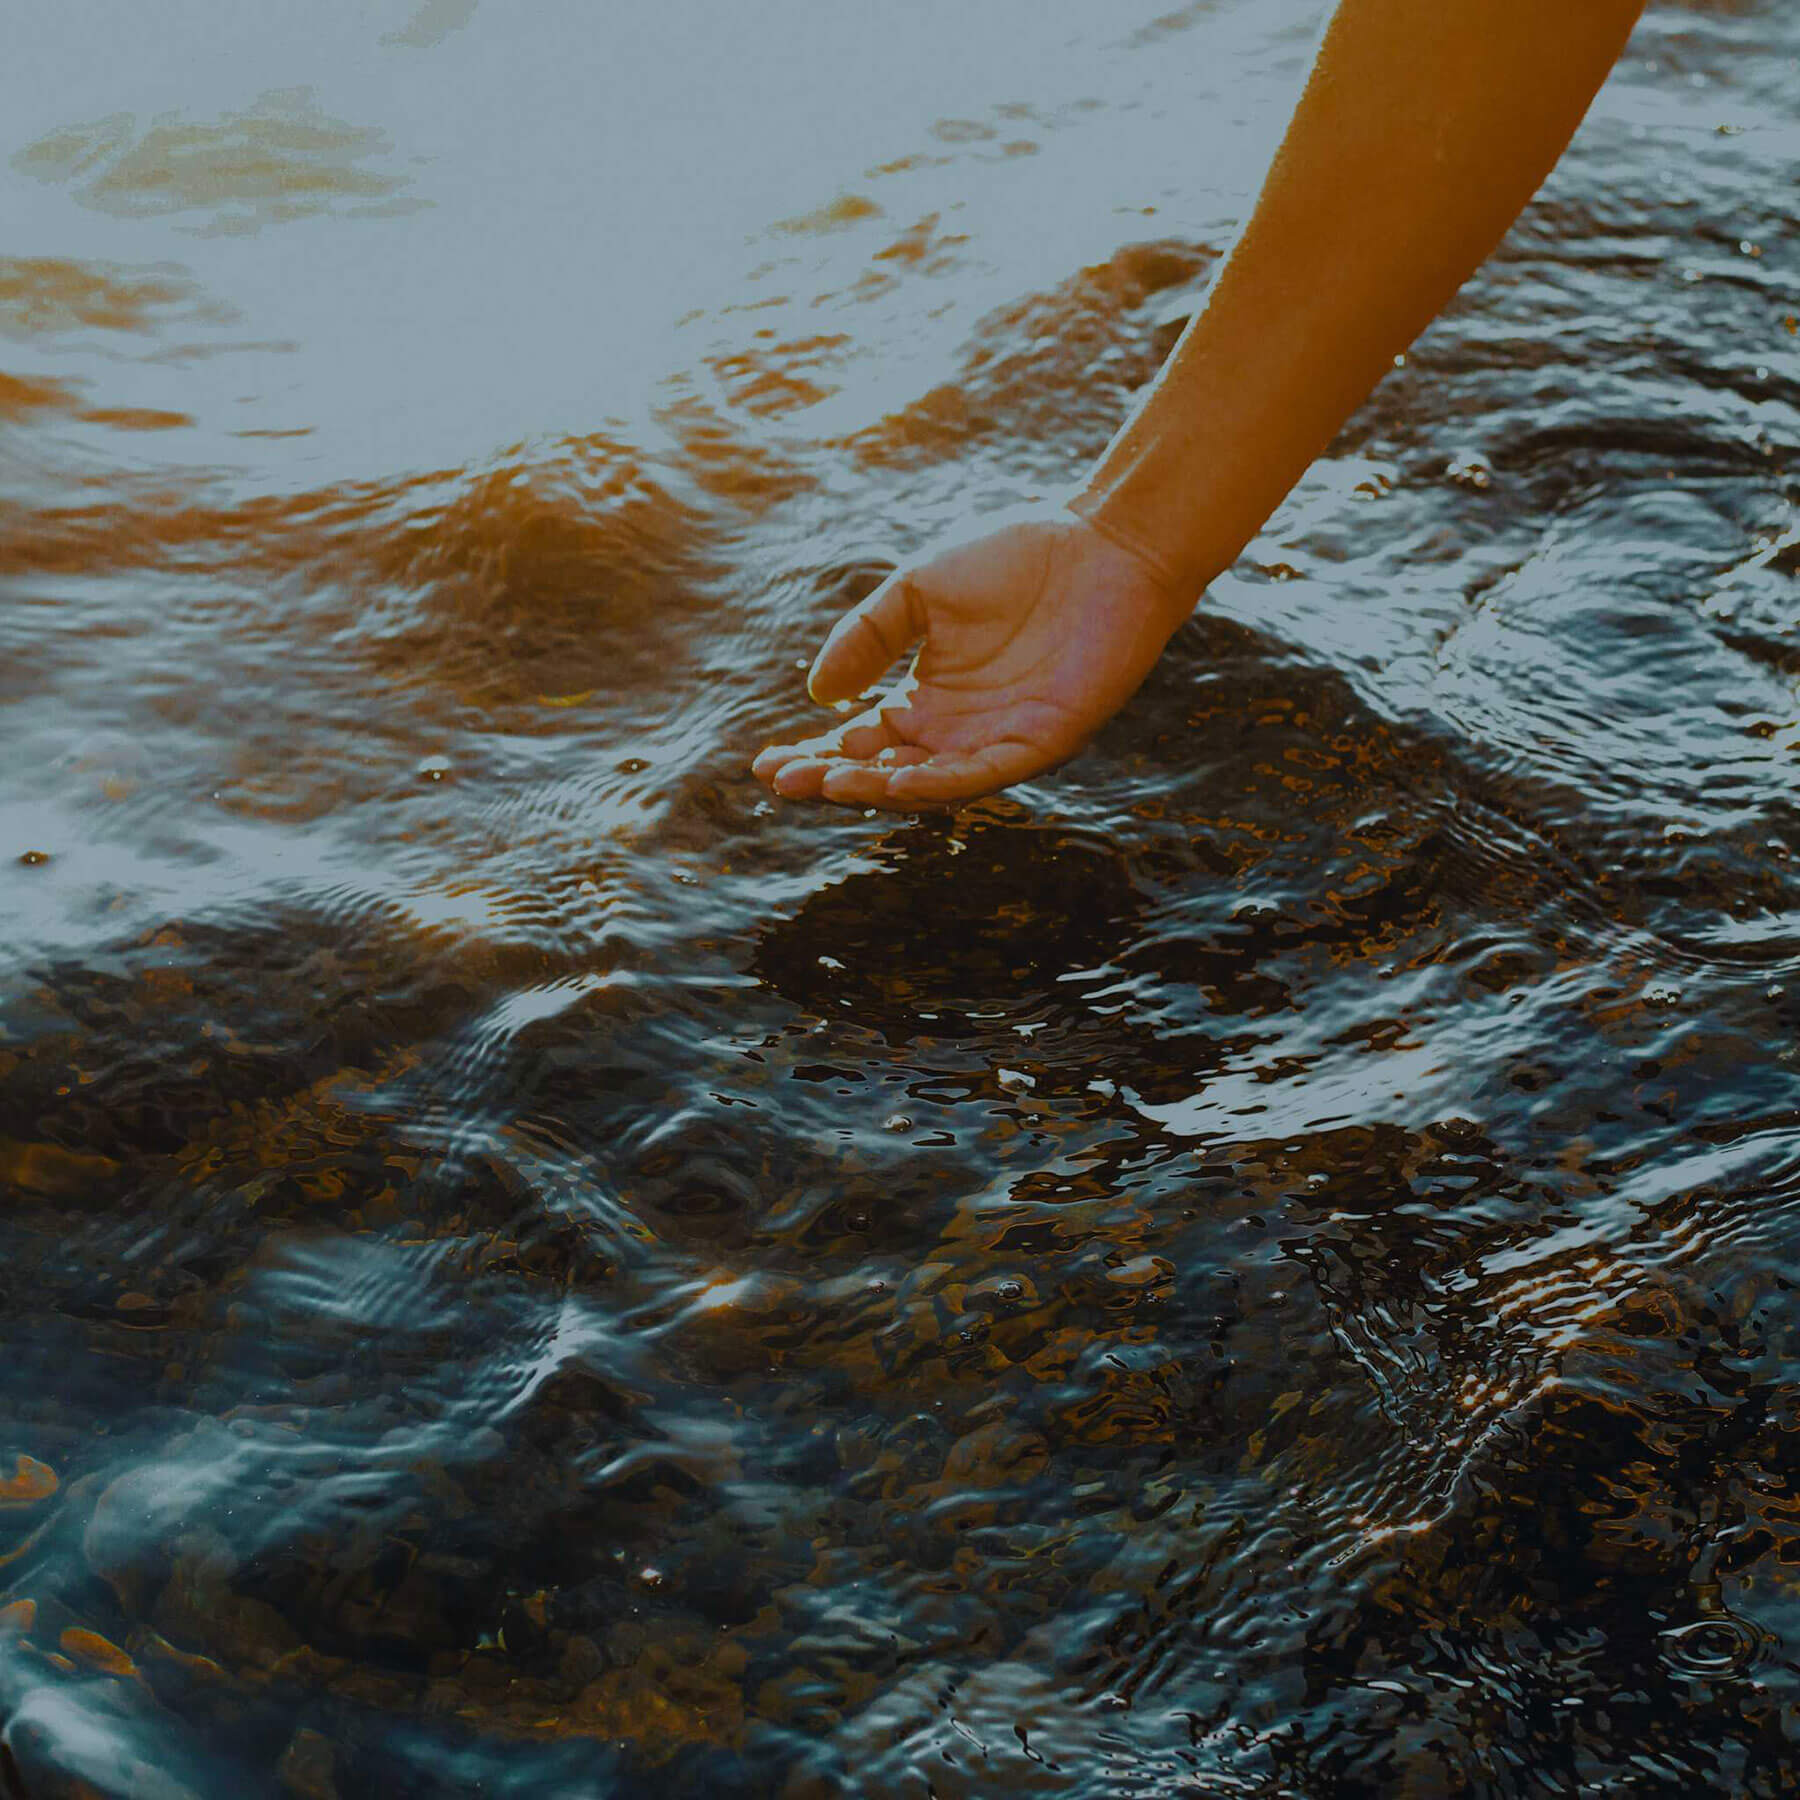 The back of a hand caresses a stream of moving water.